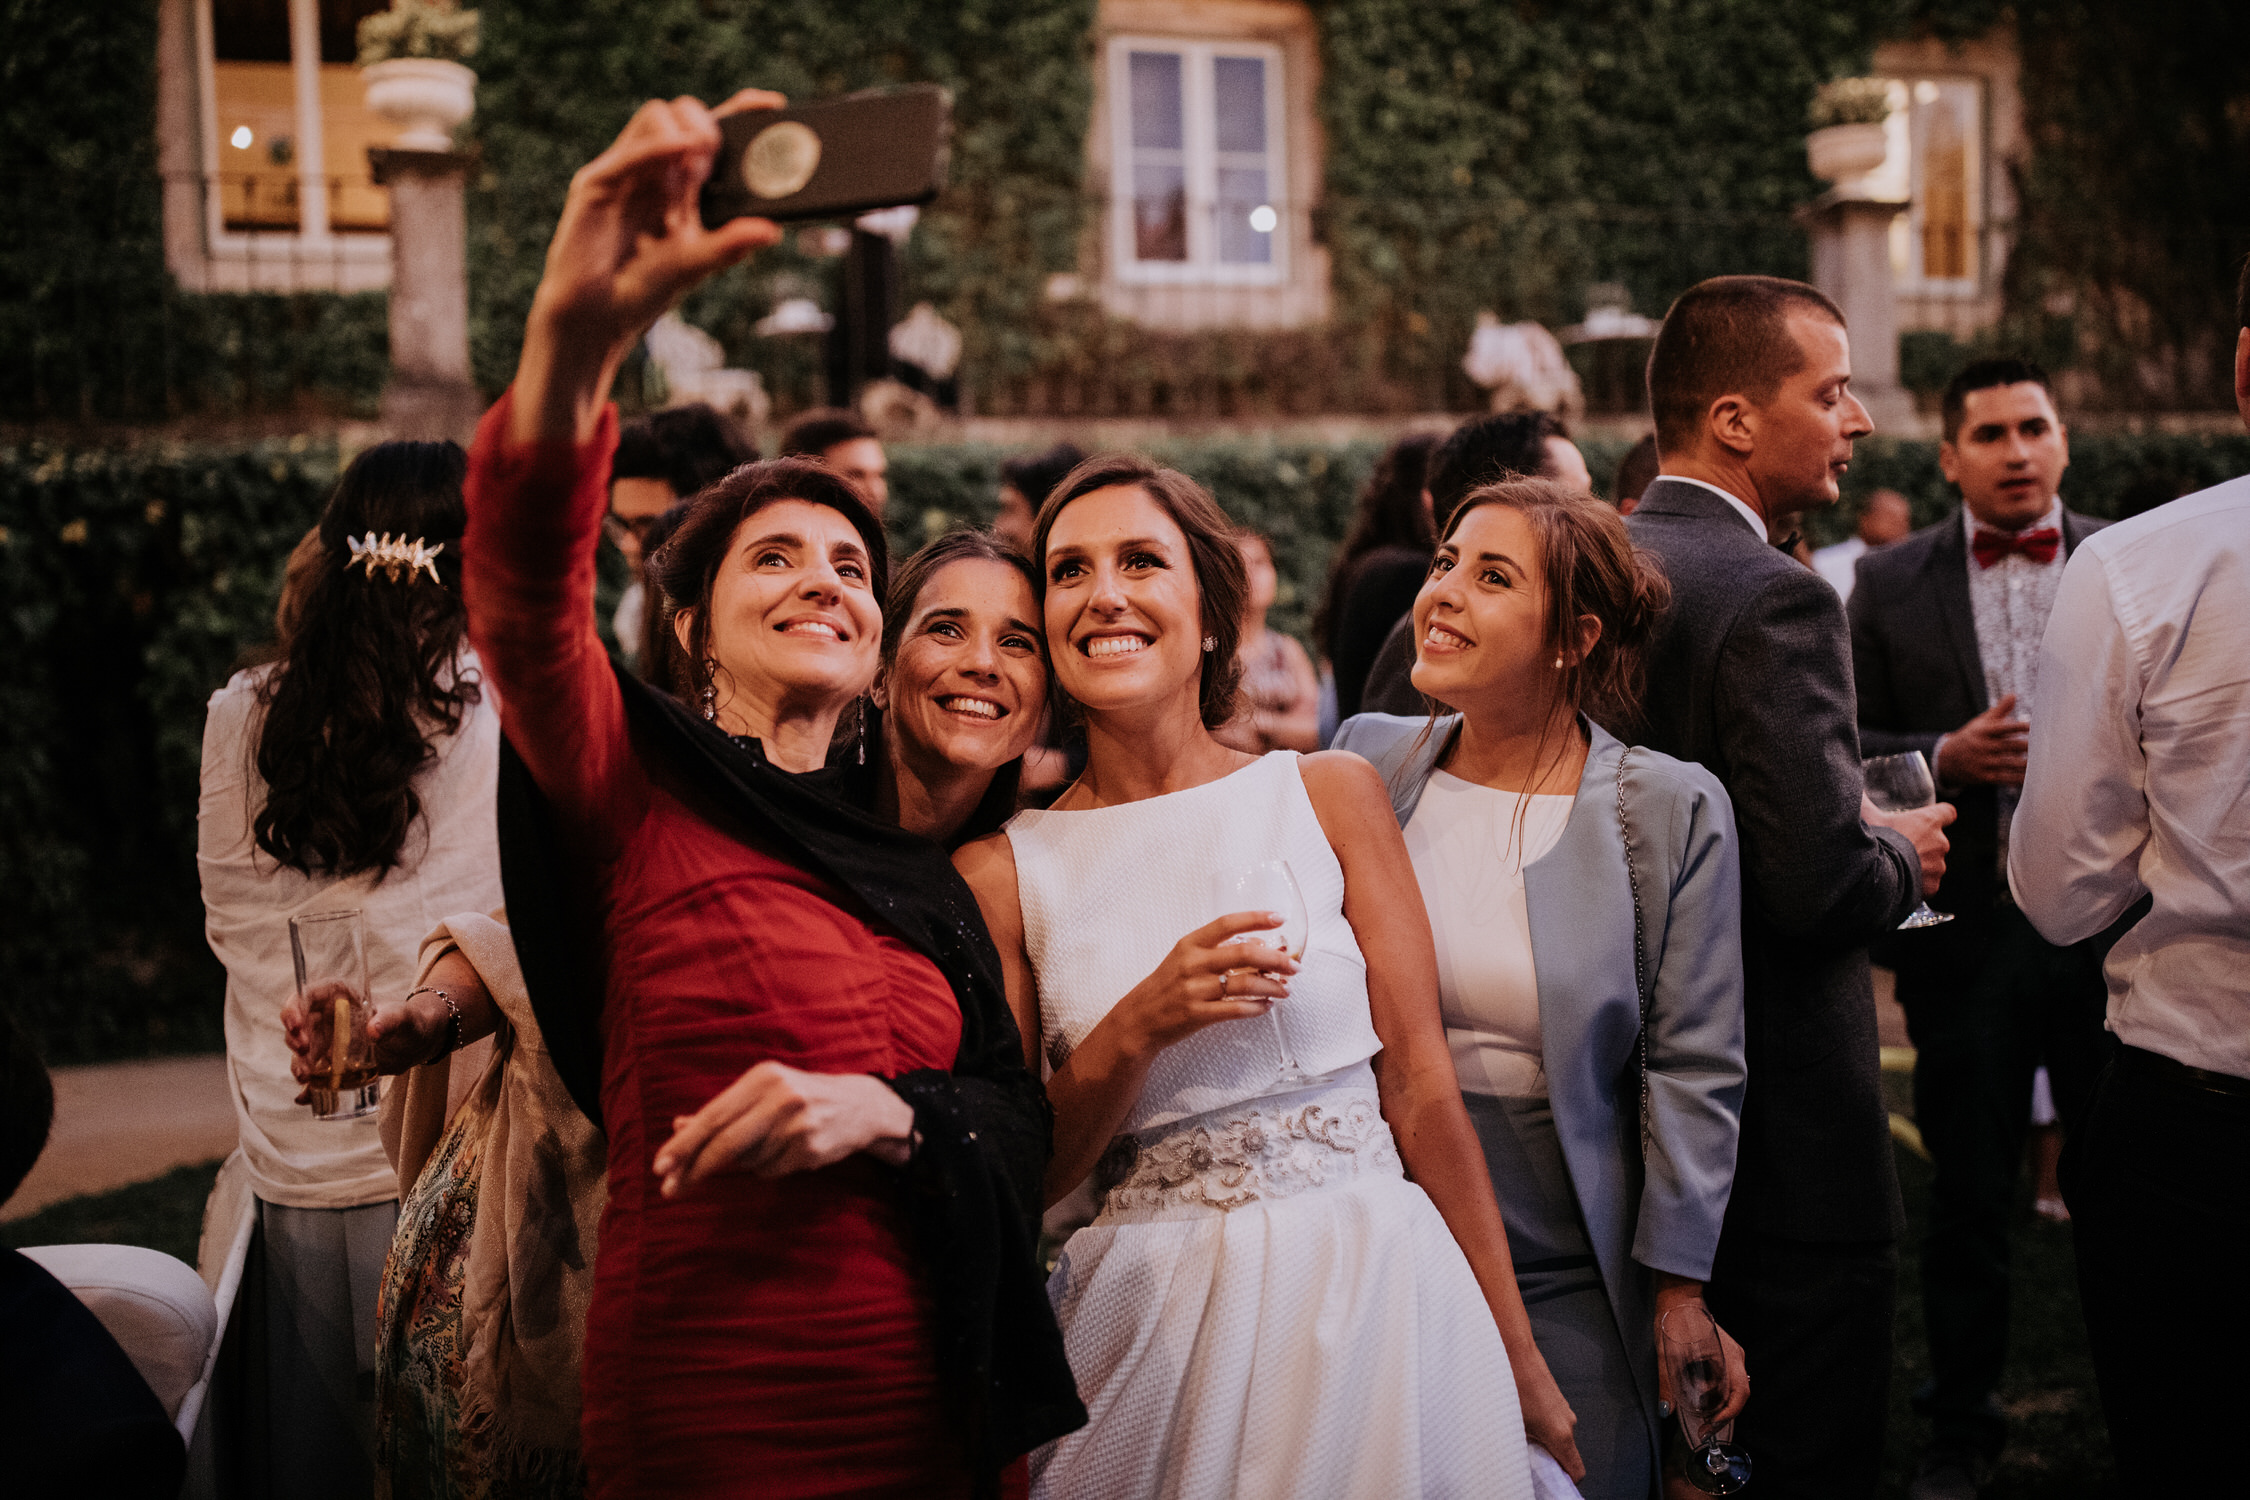 098 Filipe Santiago Fotografia Casamento wedding photographer near venue Lisbon Malveira Ericeira best Sintra Portugal destination